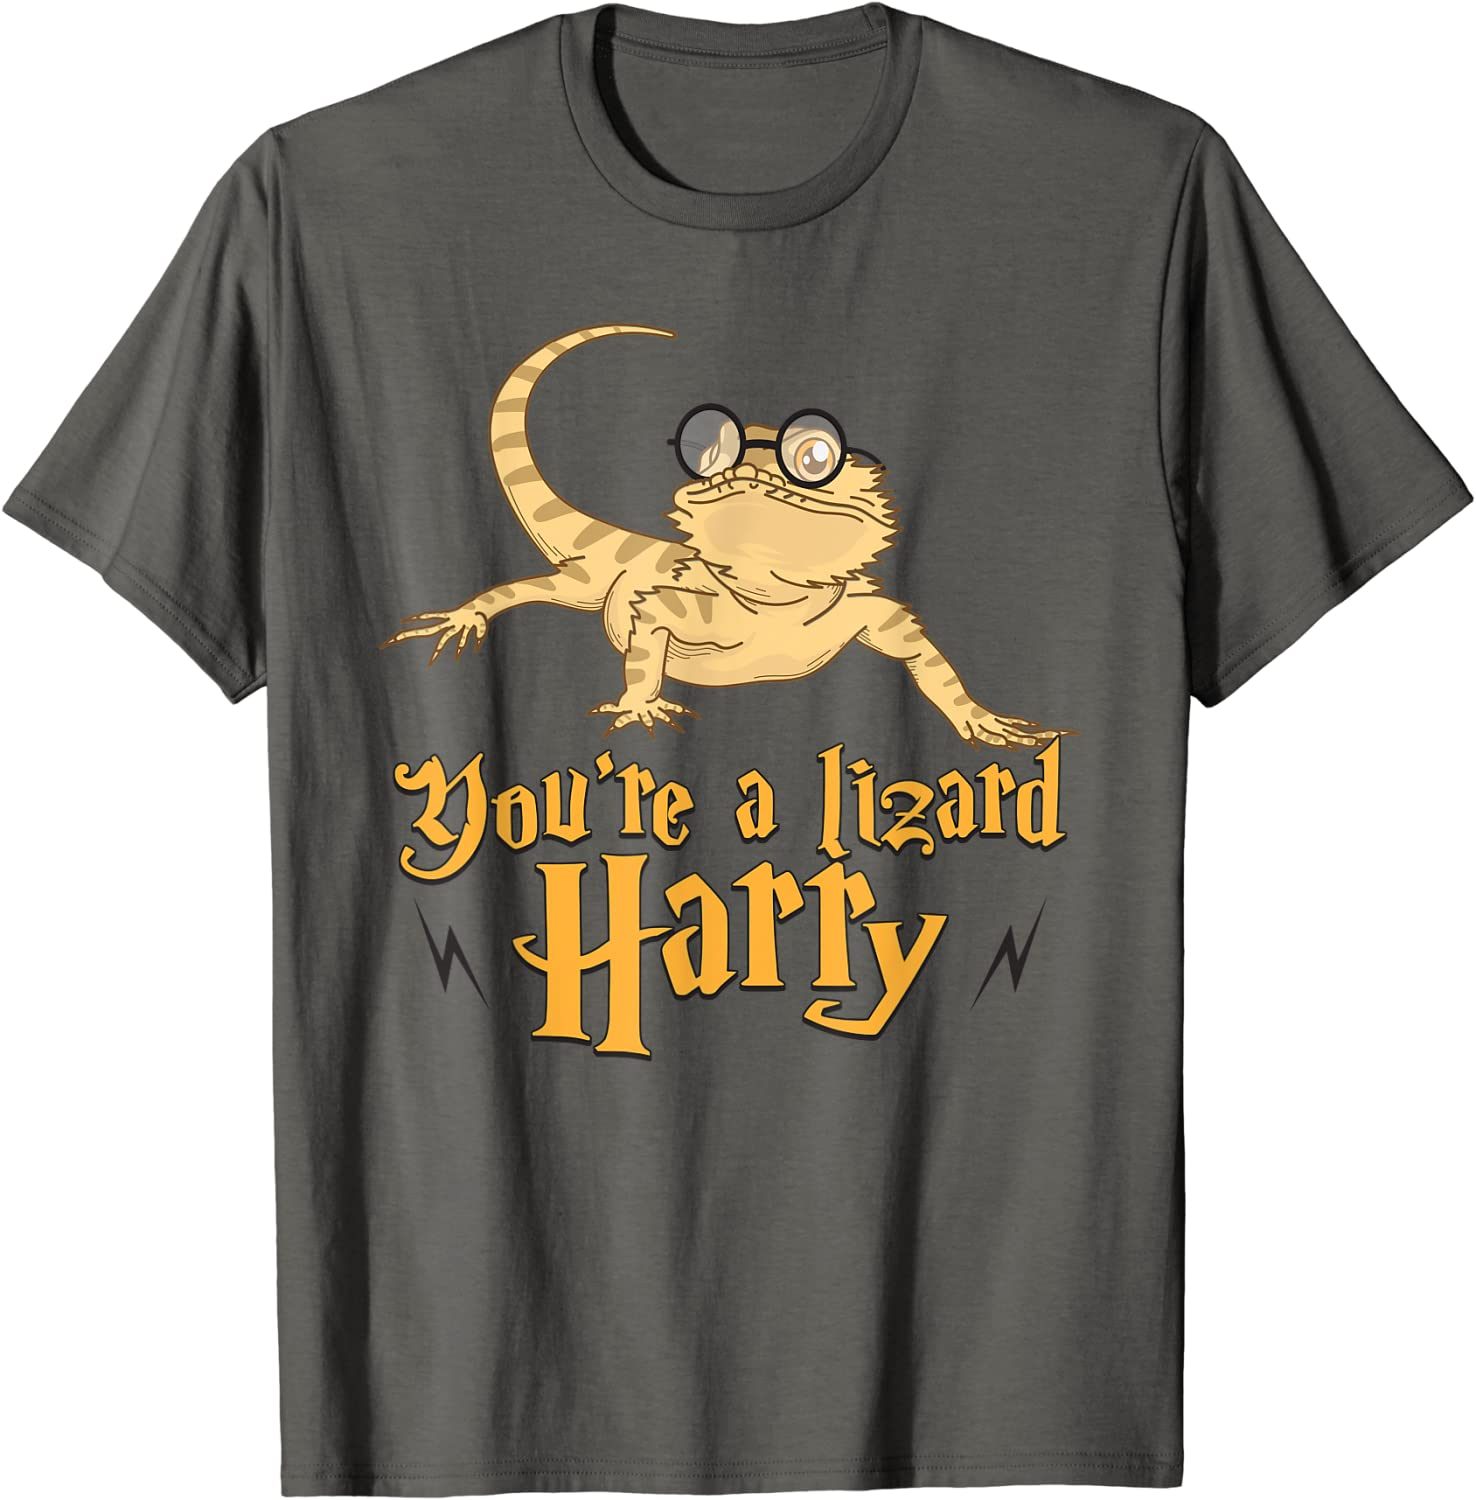 You're A Lizard Harry Ranking TOP14 T-Shirt - Bookworm Fantasy Gift Spring new work one after another T-Shi Idea